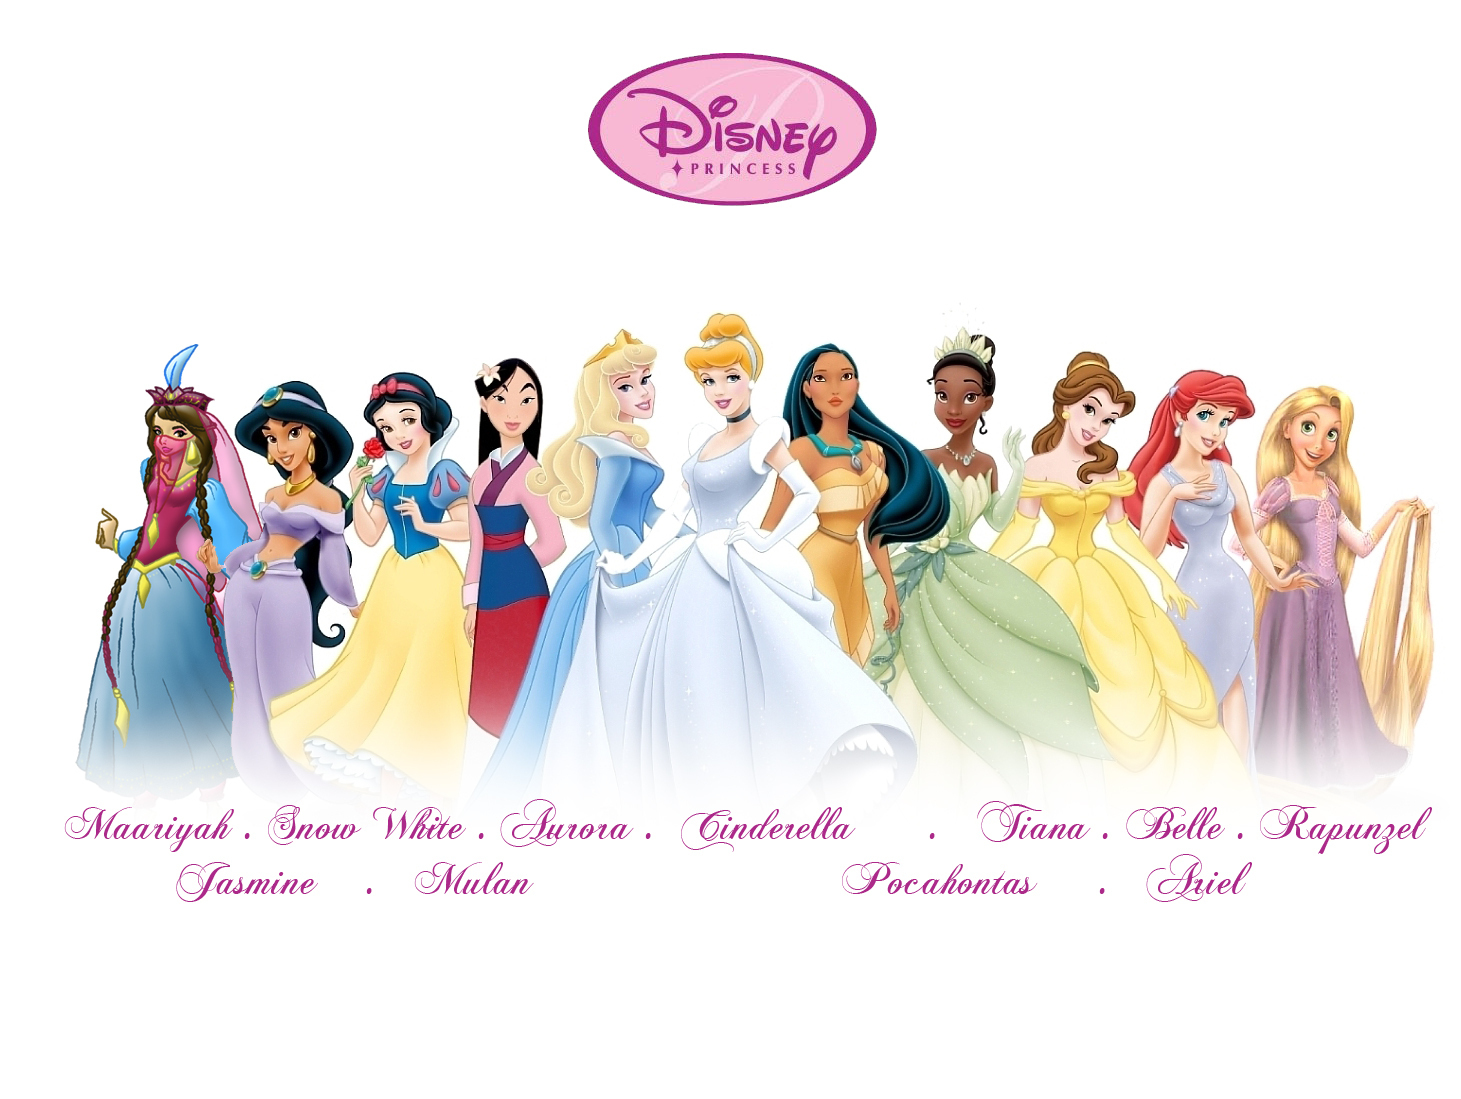 Disney Princess New Disney Princess Line Up